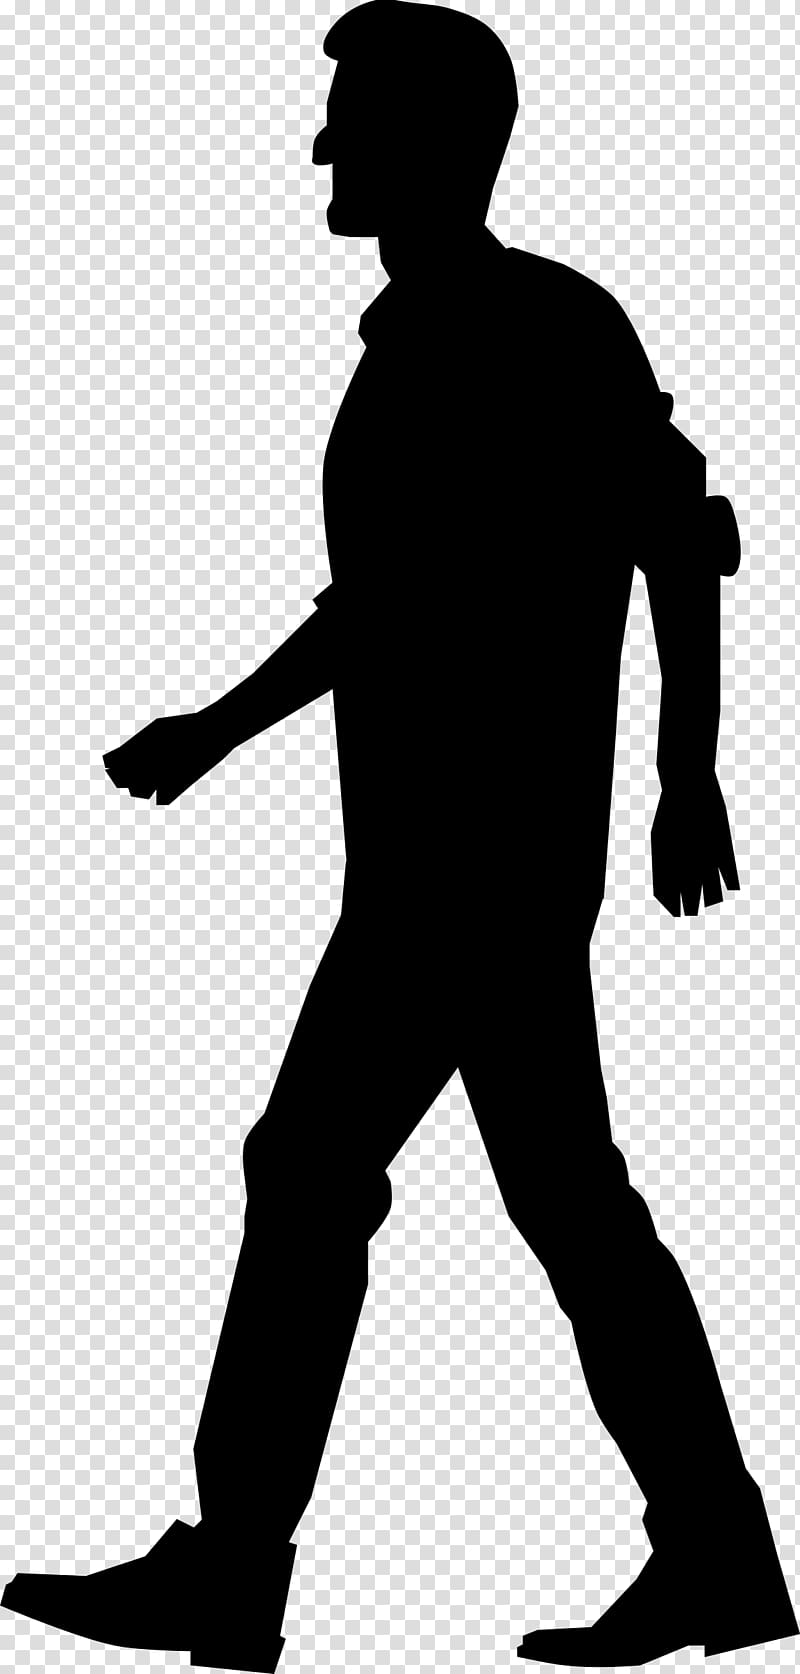 Walking Computer Icons , silhouette transparent background.